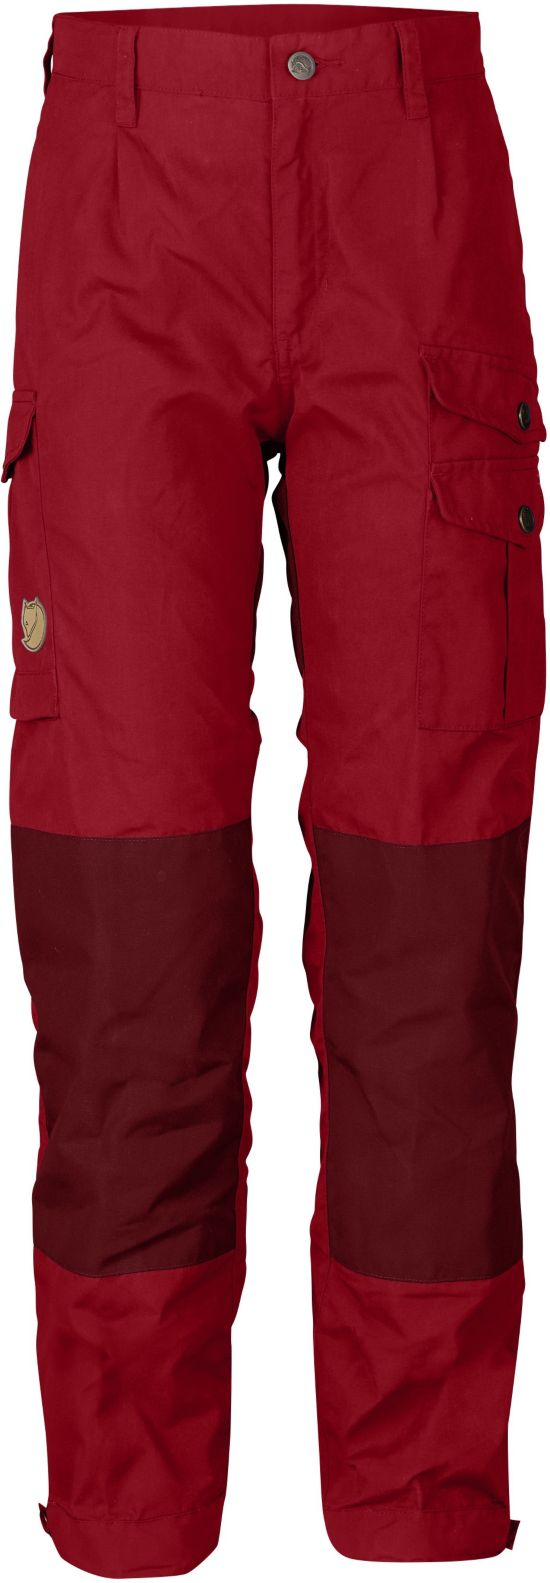 Vidda Turbukse Junior DEEP RED